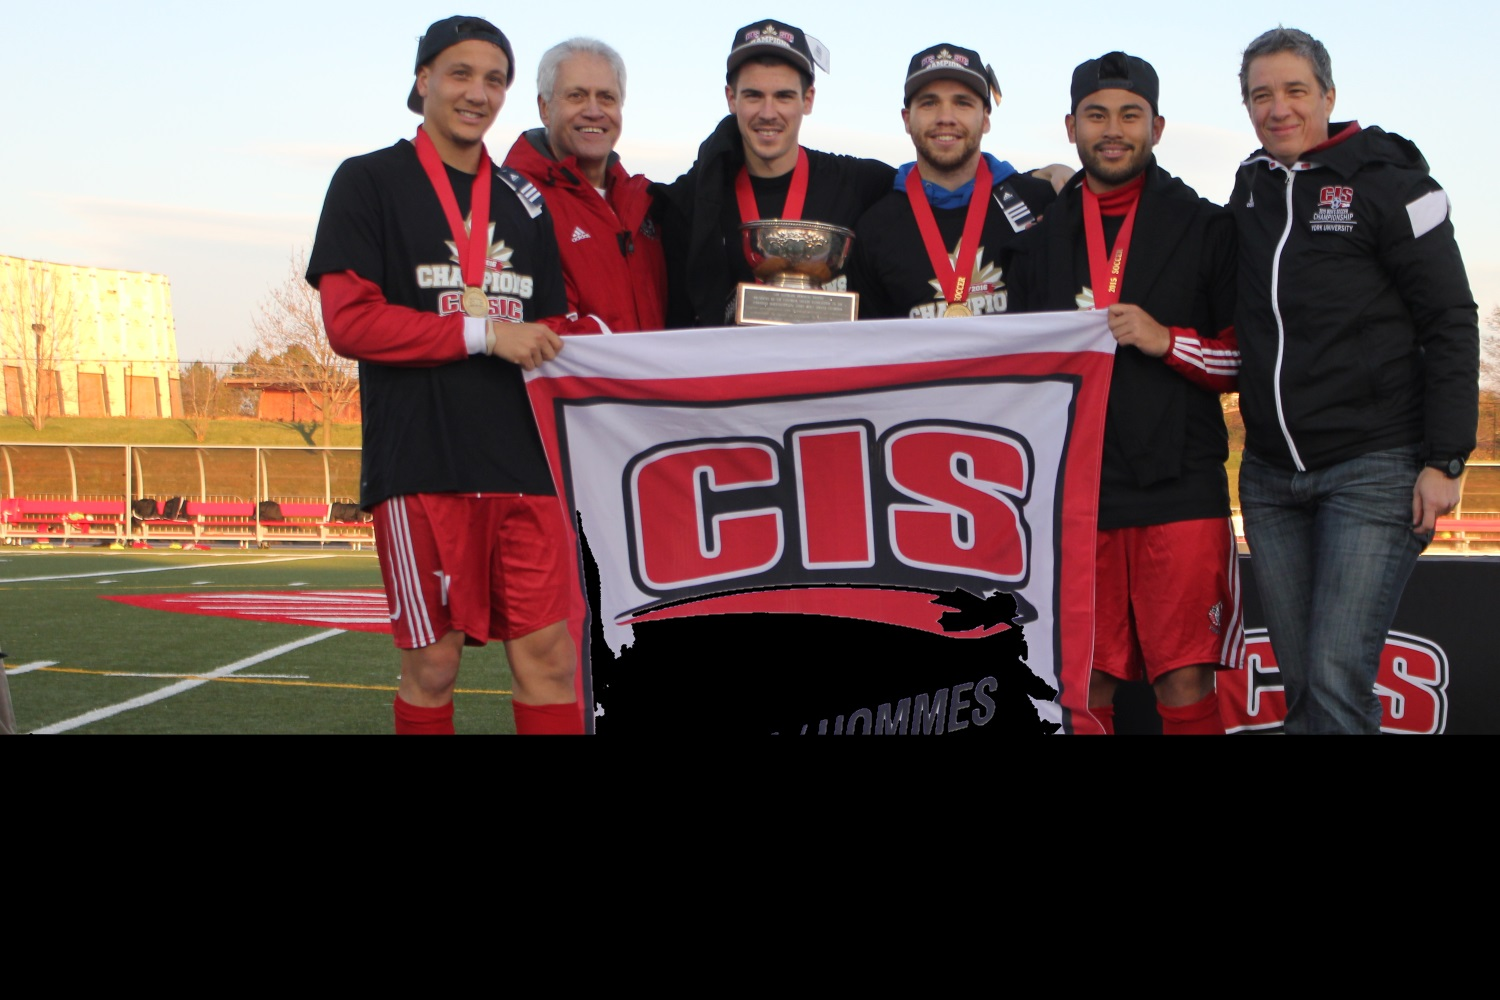 #LIONPRIDE: Congrats to York's Men's Soccer Team on 2nd Straight National Title